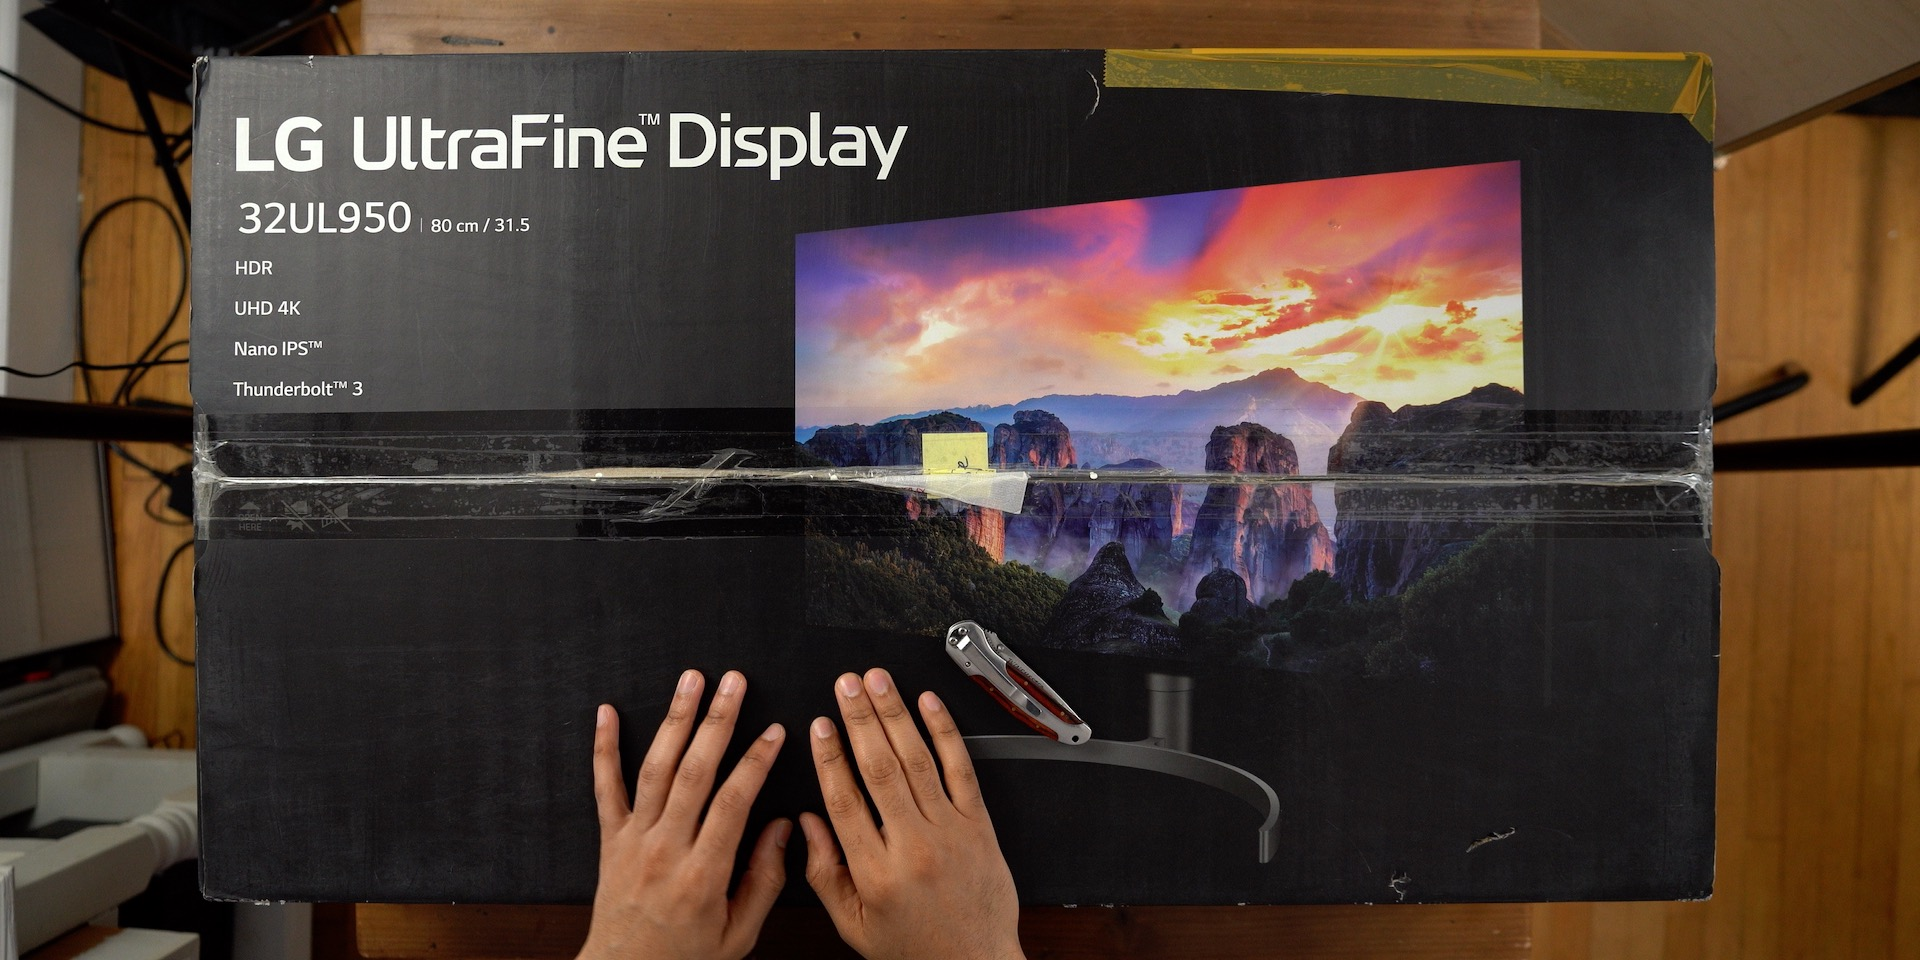 LG 32UL950 UltraFine 4K Display Review Unboxing